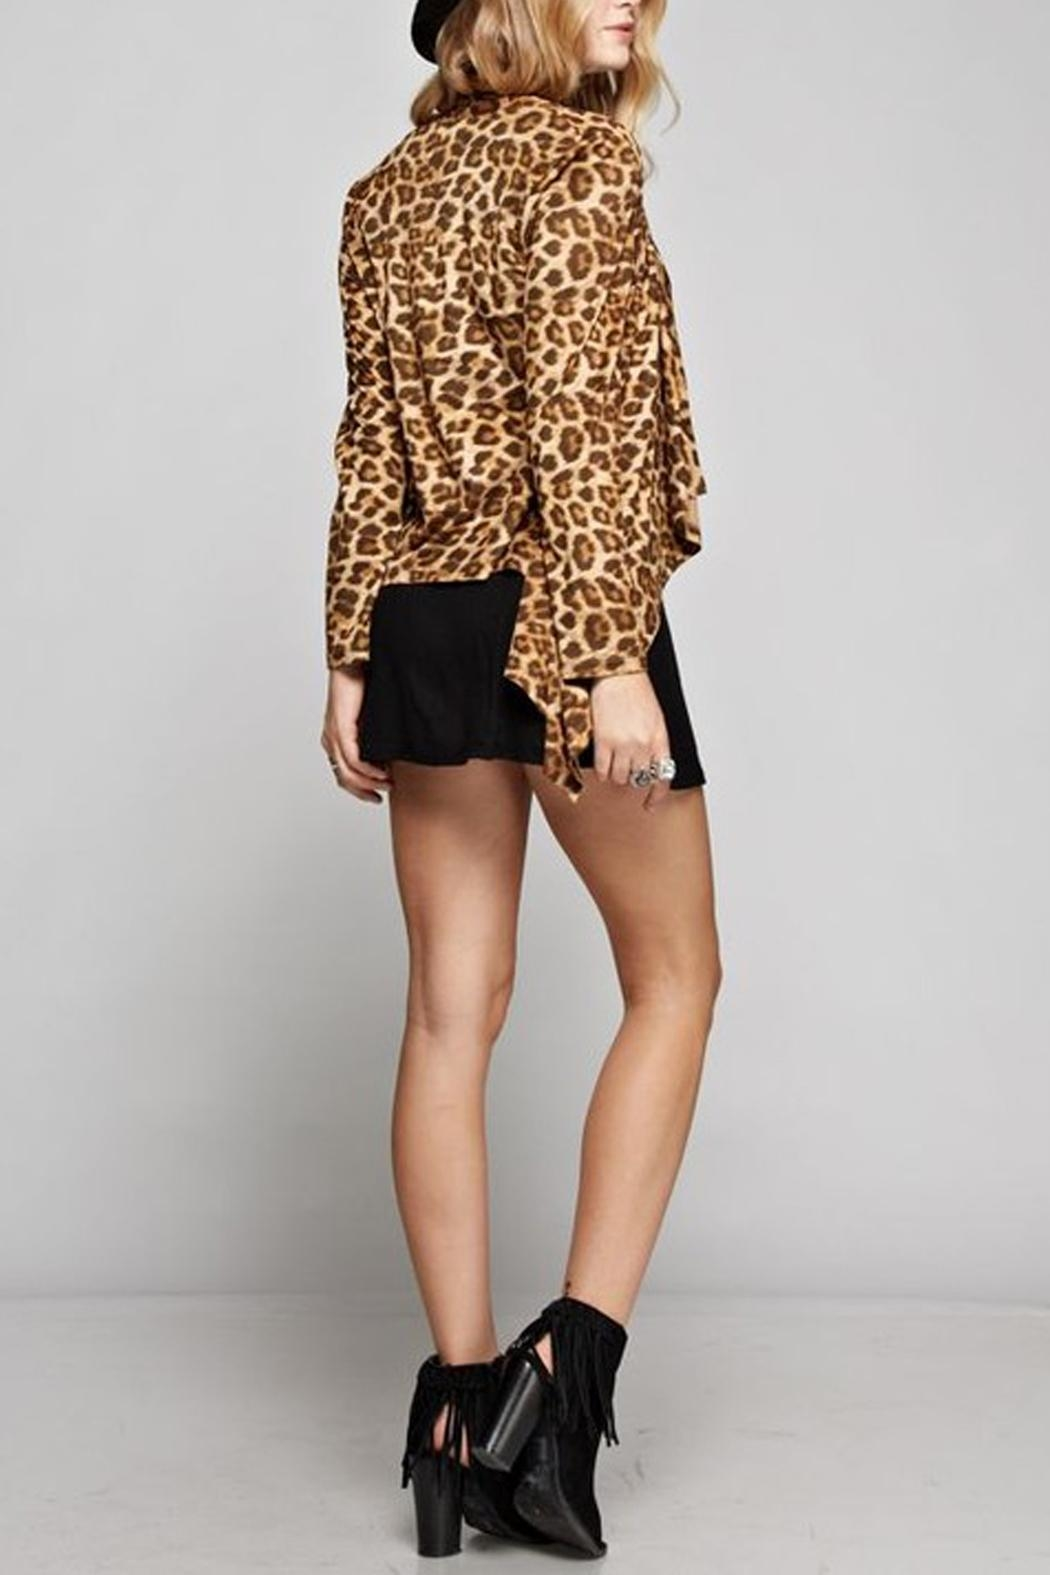 GeeGee Leopard Print Cardigan from Texas by JChronicles — Shoptiques